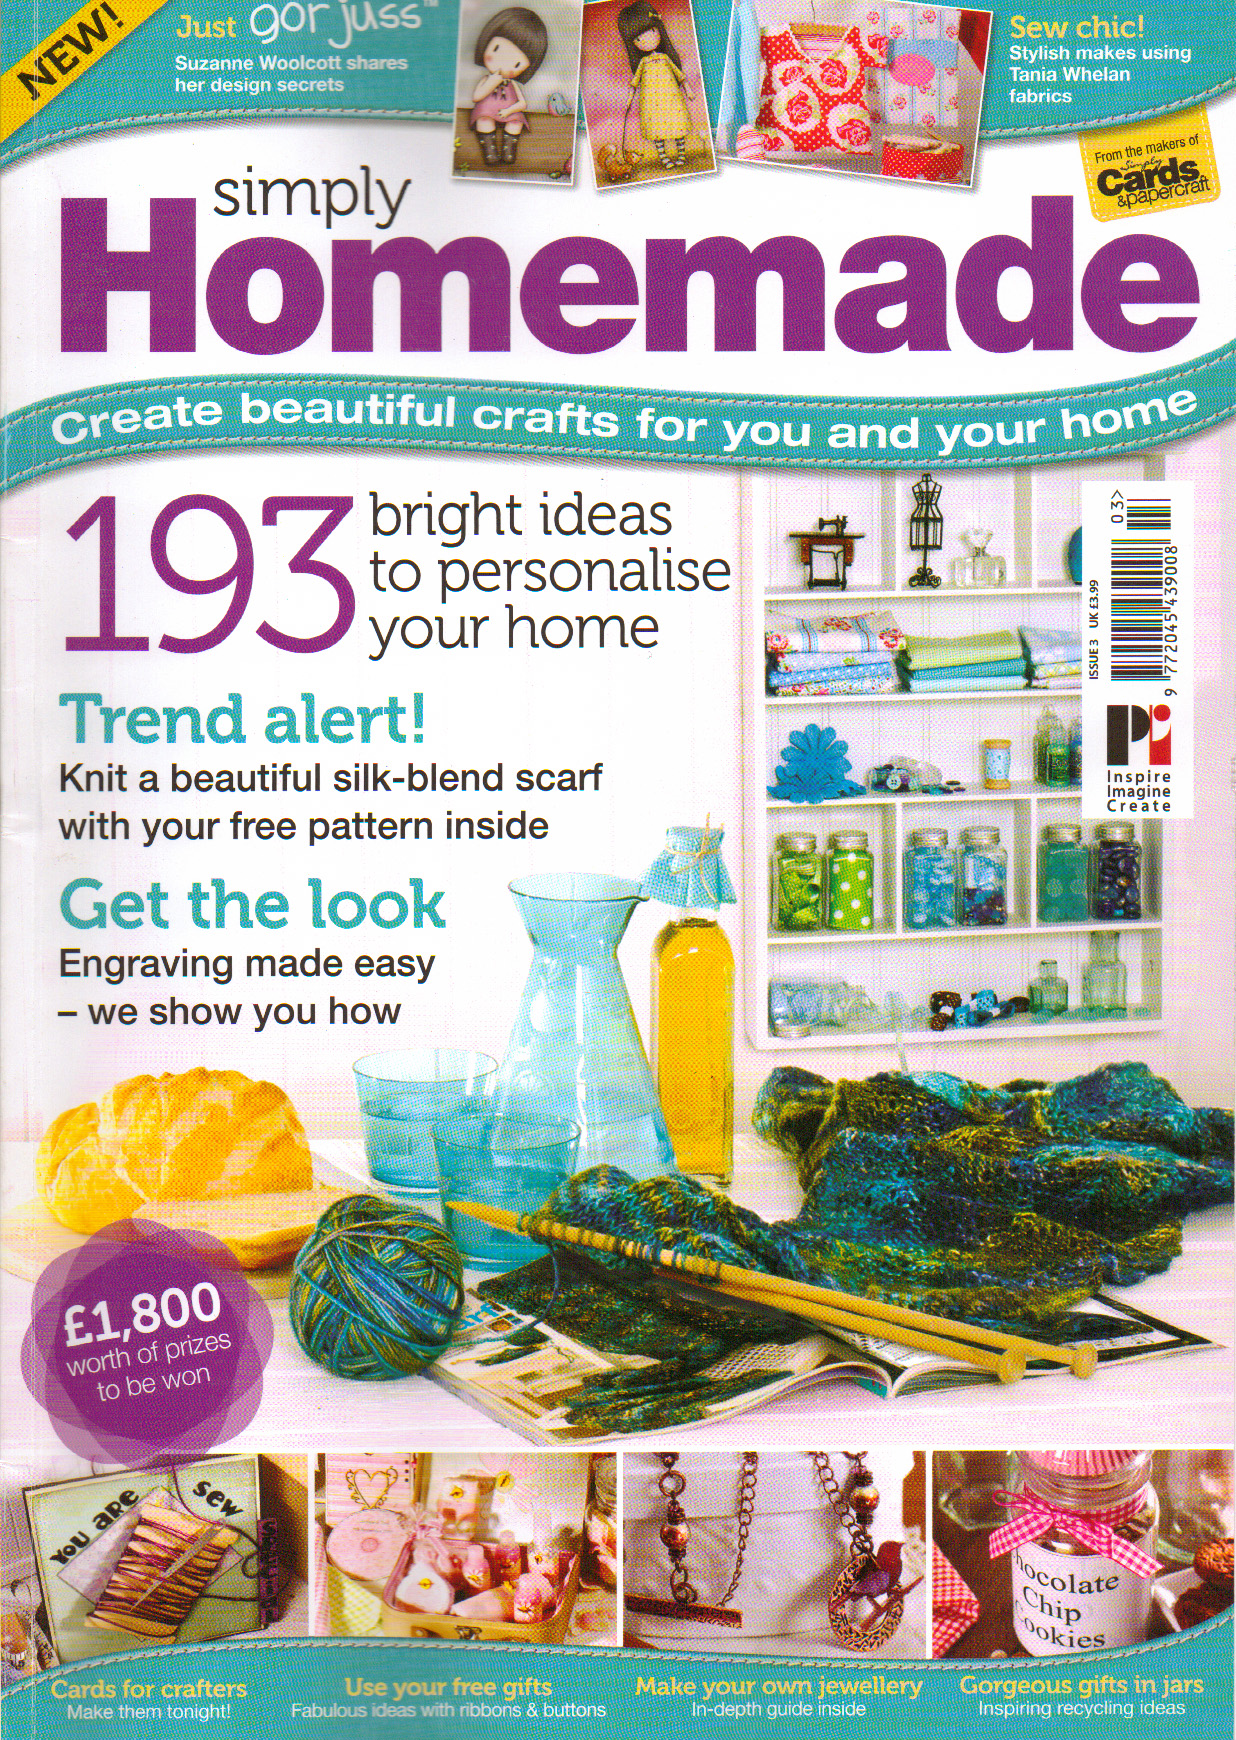 SIMPLY HOMNEMADE FEATURE APRIL 2011 FRONT COVER.jpg